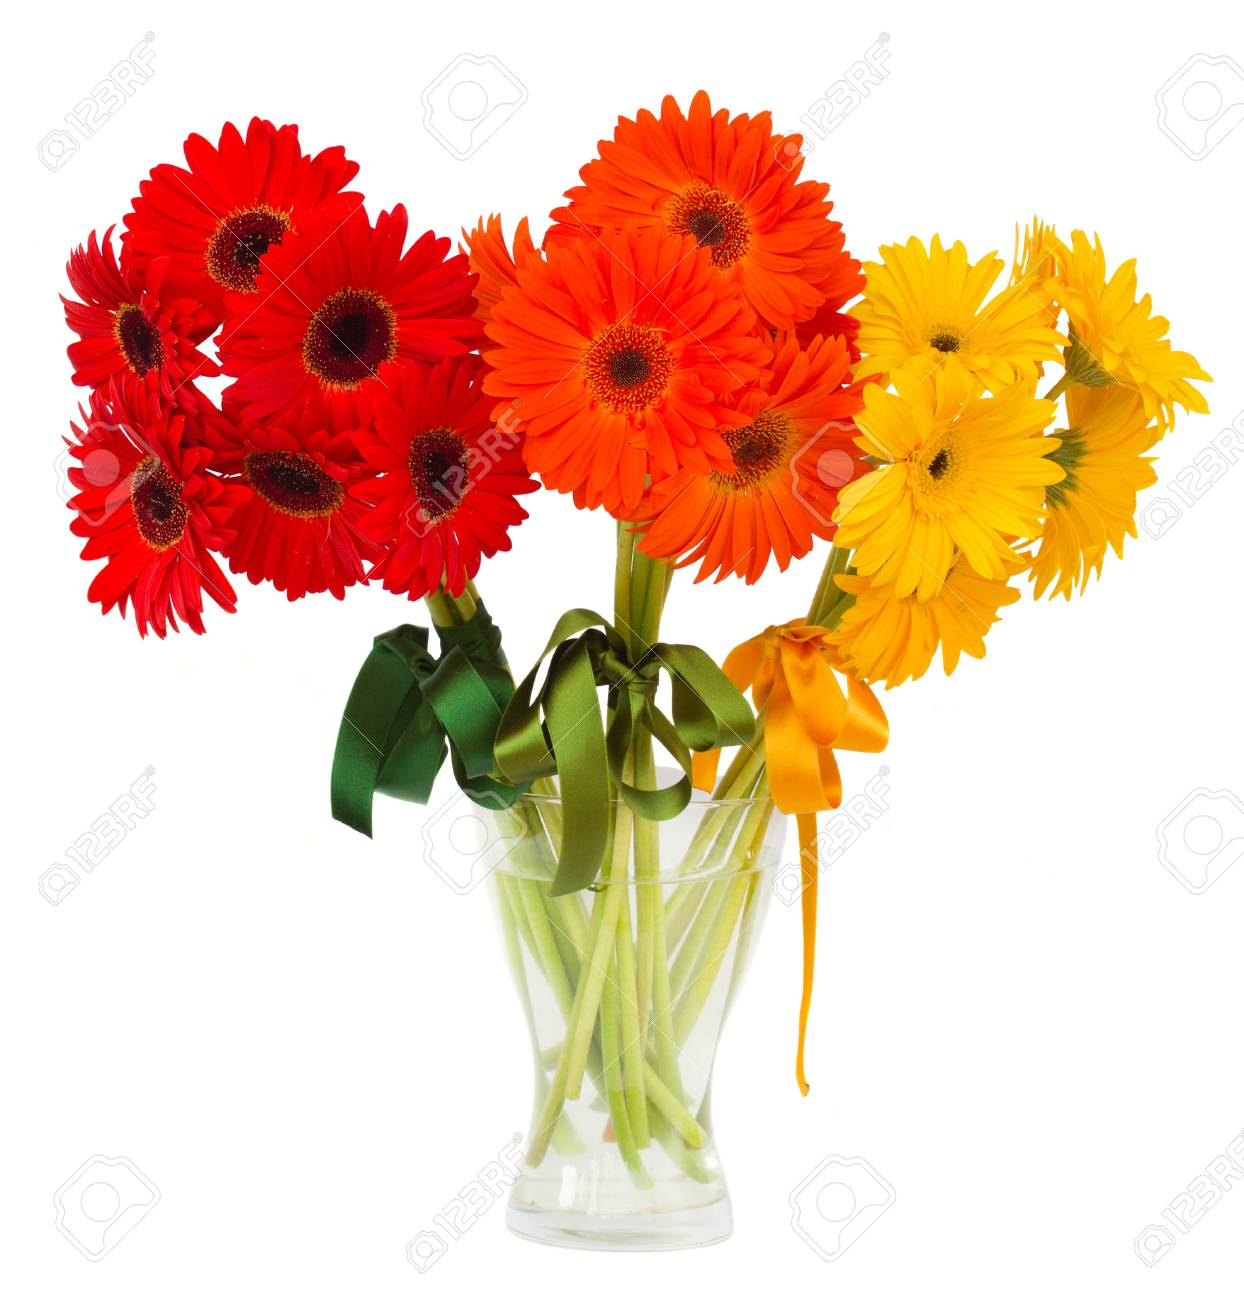 gerbera flowers bouquets in vase  isolated on white background Stock Photo - 21610410